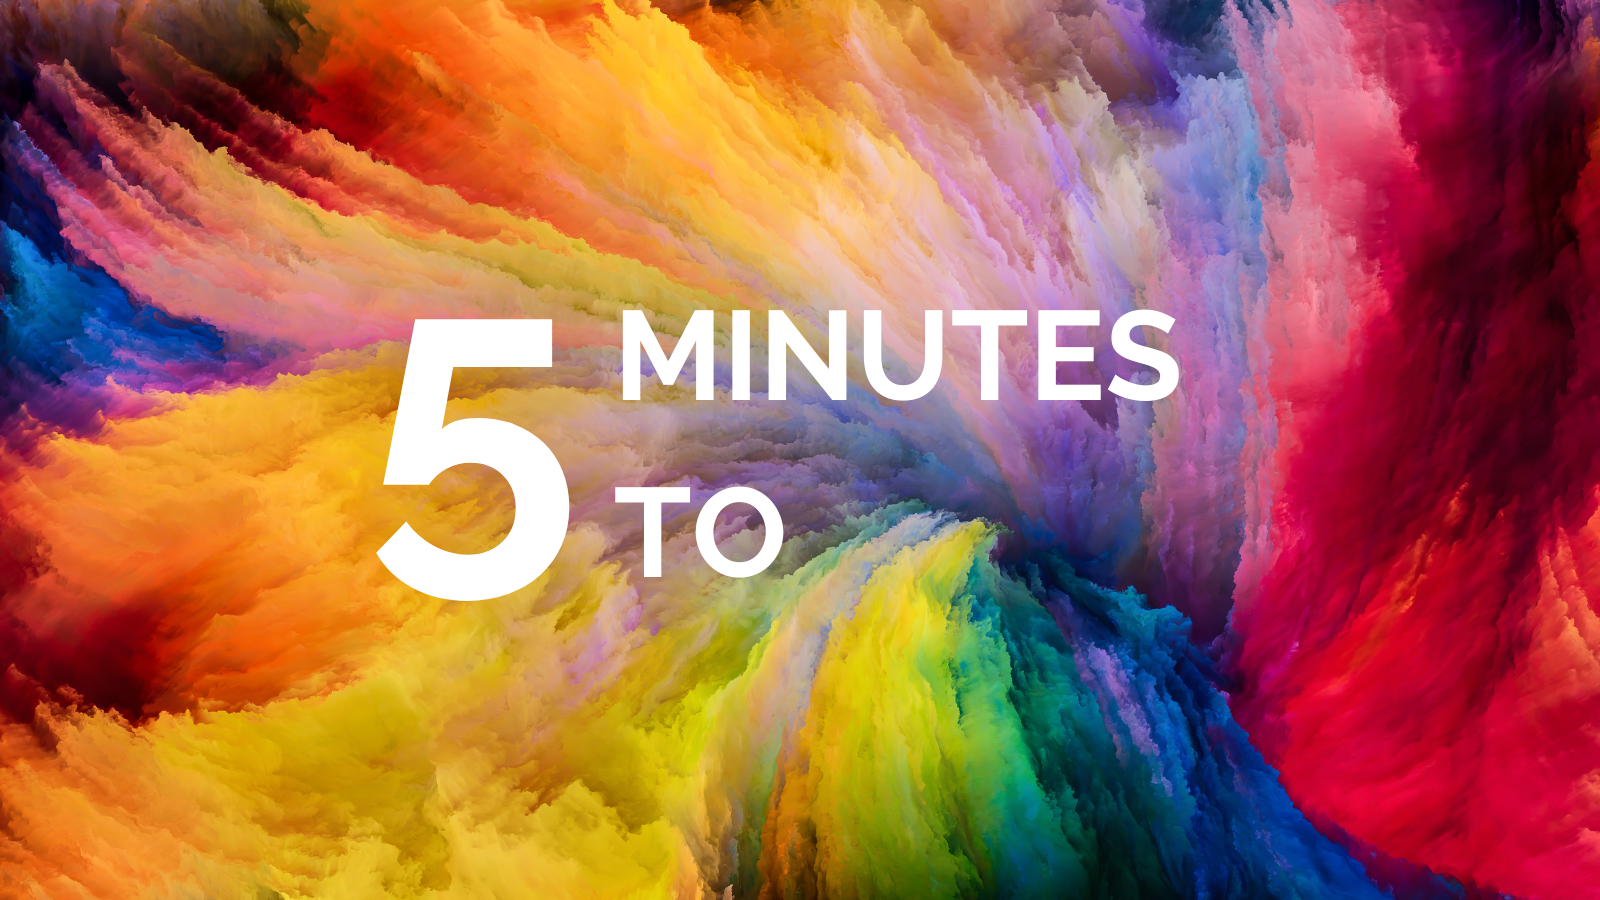 5 Minutes To: UX Design and Psychology